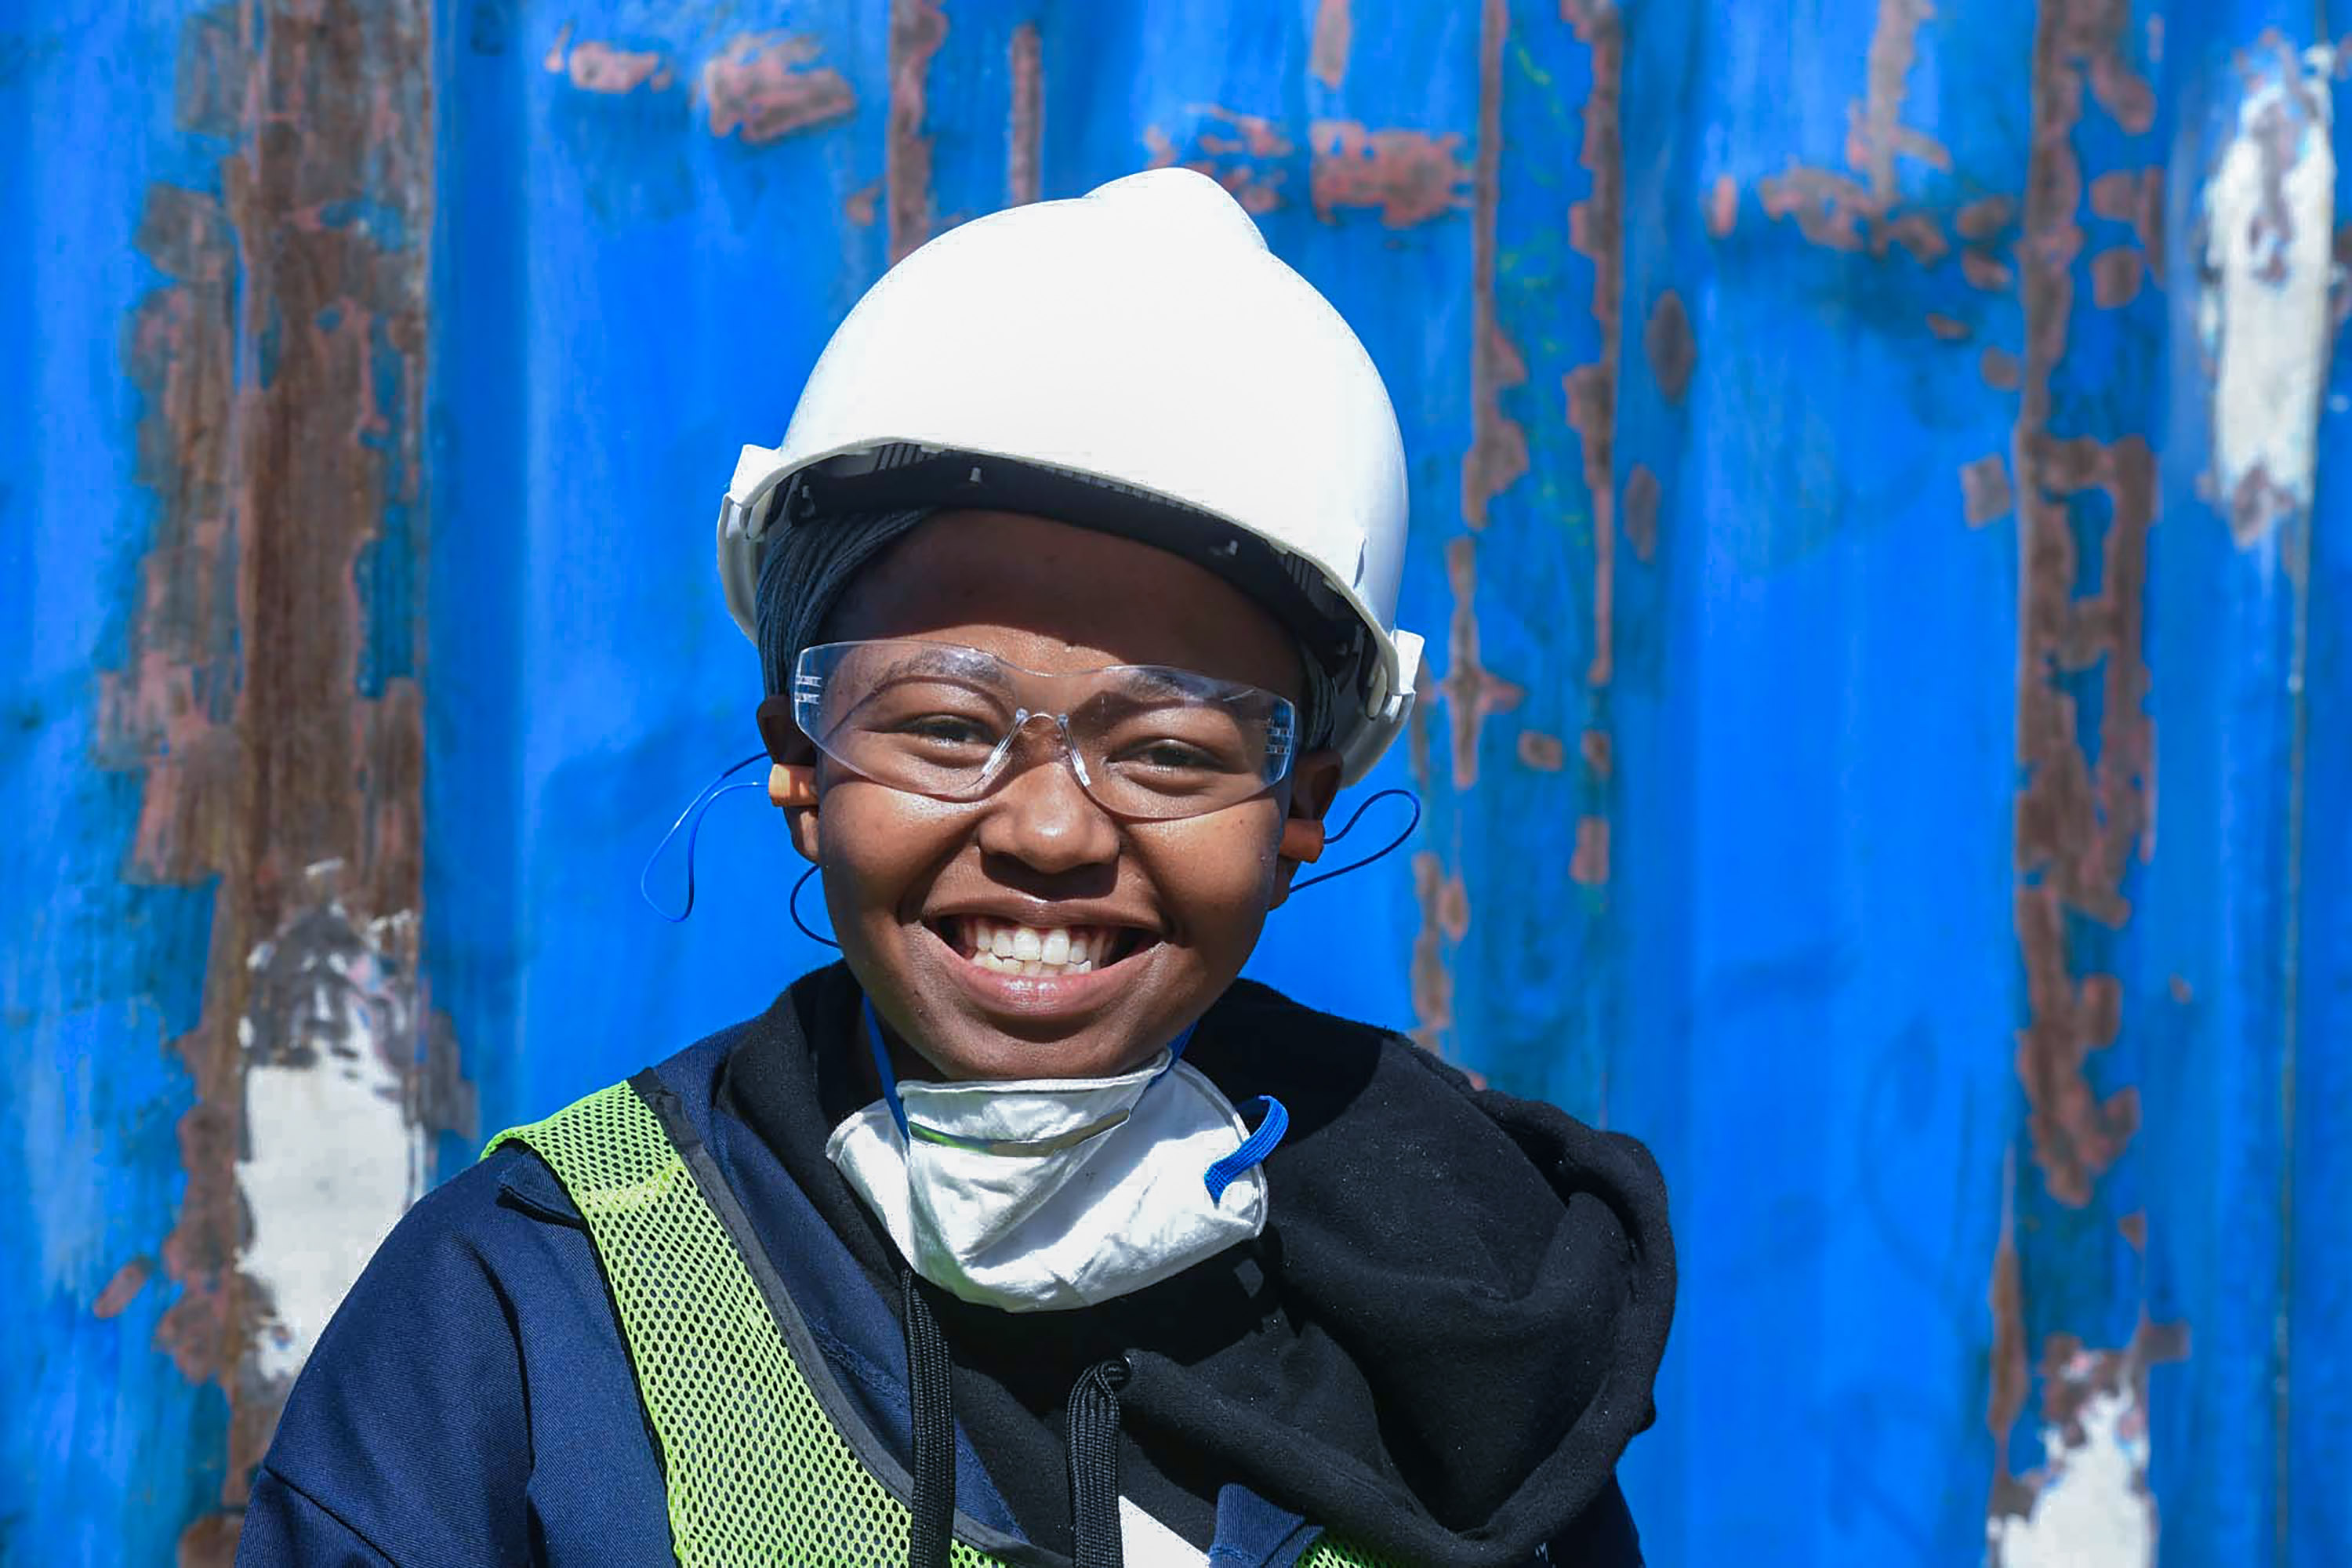 23 September 2019: Limpho Rodolo, one of the architecture students who is volunteering her time to work on the project.